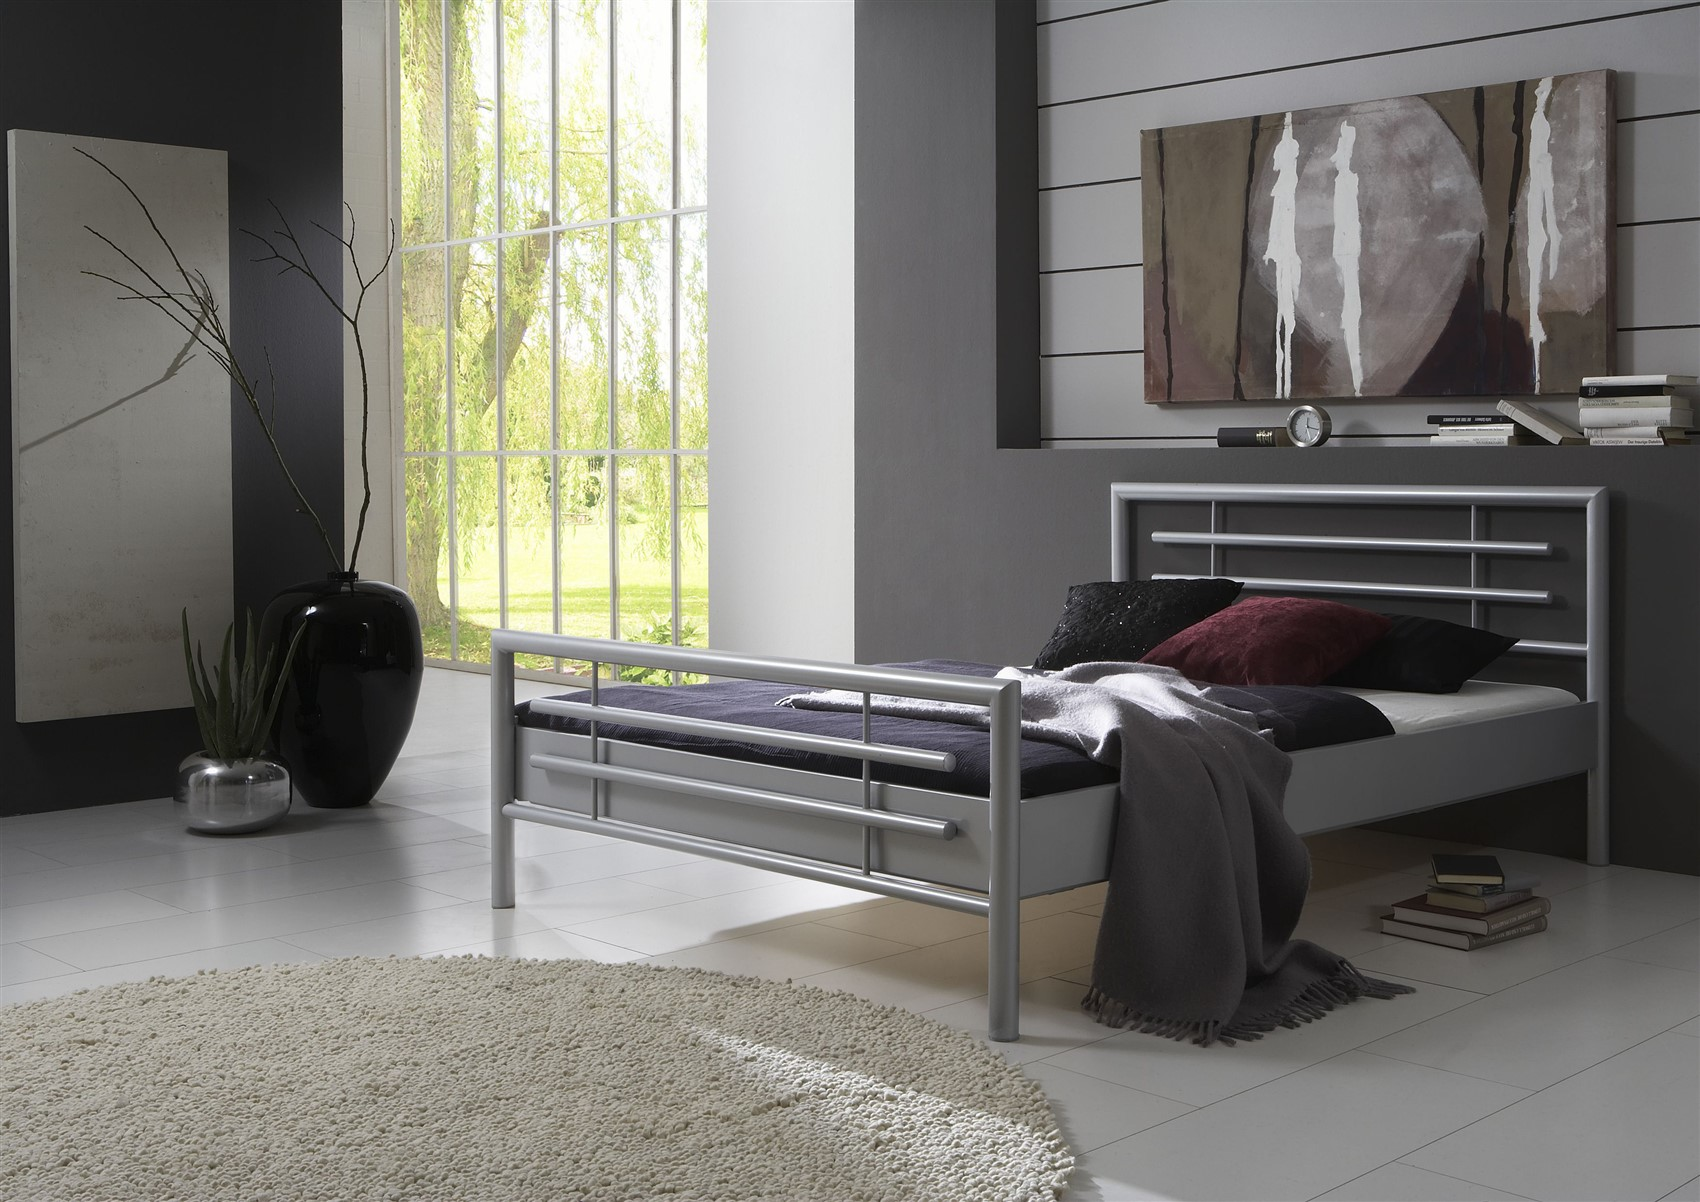 metallbett doppelbett bett steel silber lackiert 200x200 cm fun m bel. Black Bedroom Furniture Sets. Home Design Ideas